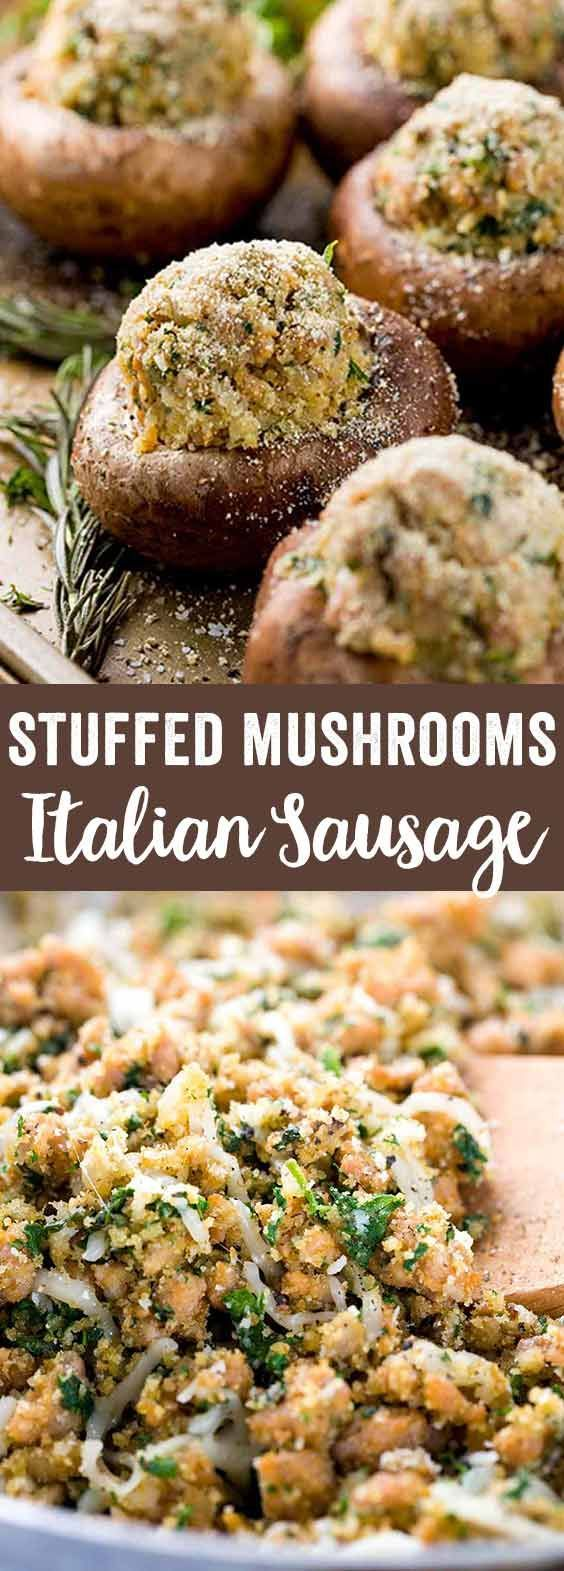 Stuffed mushrooms filled with herbs and Italian sausage make for an easy appetizer! Fresh basil, parsley, breadcrumbs, and cheese fill each cap. via @foodiegavin